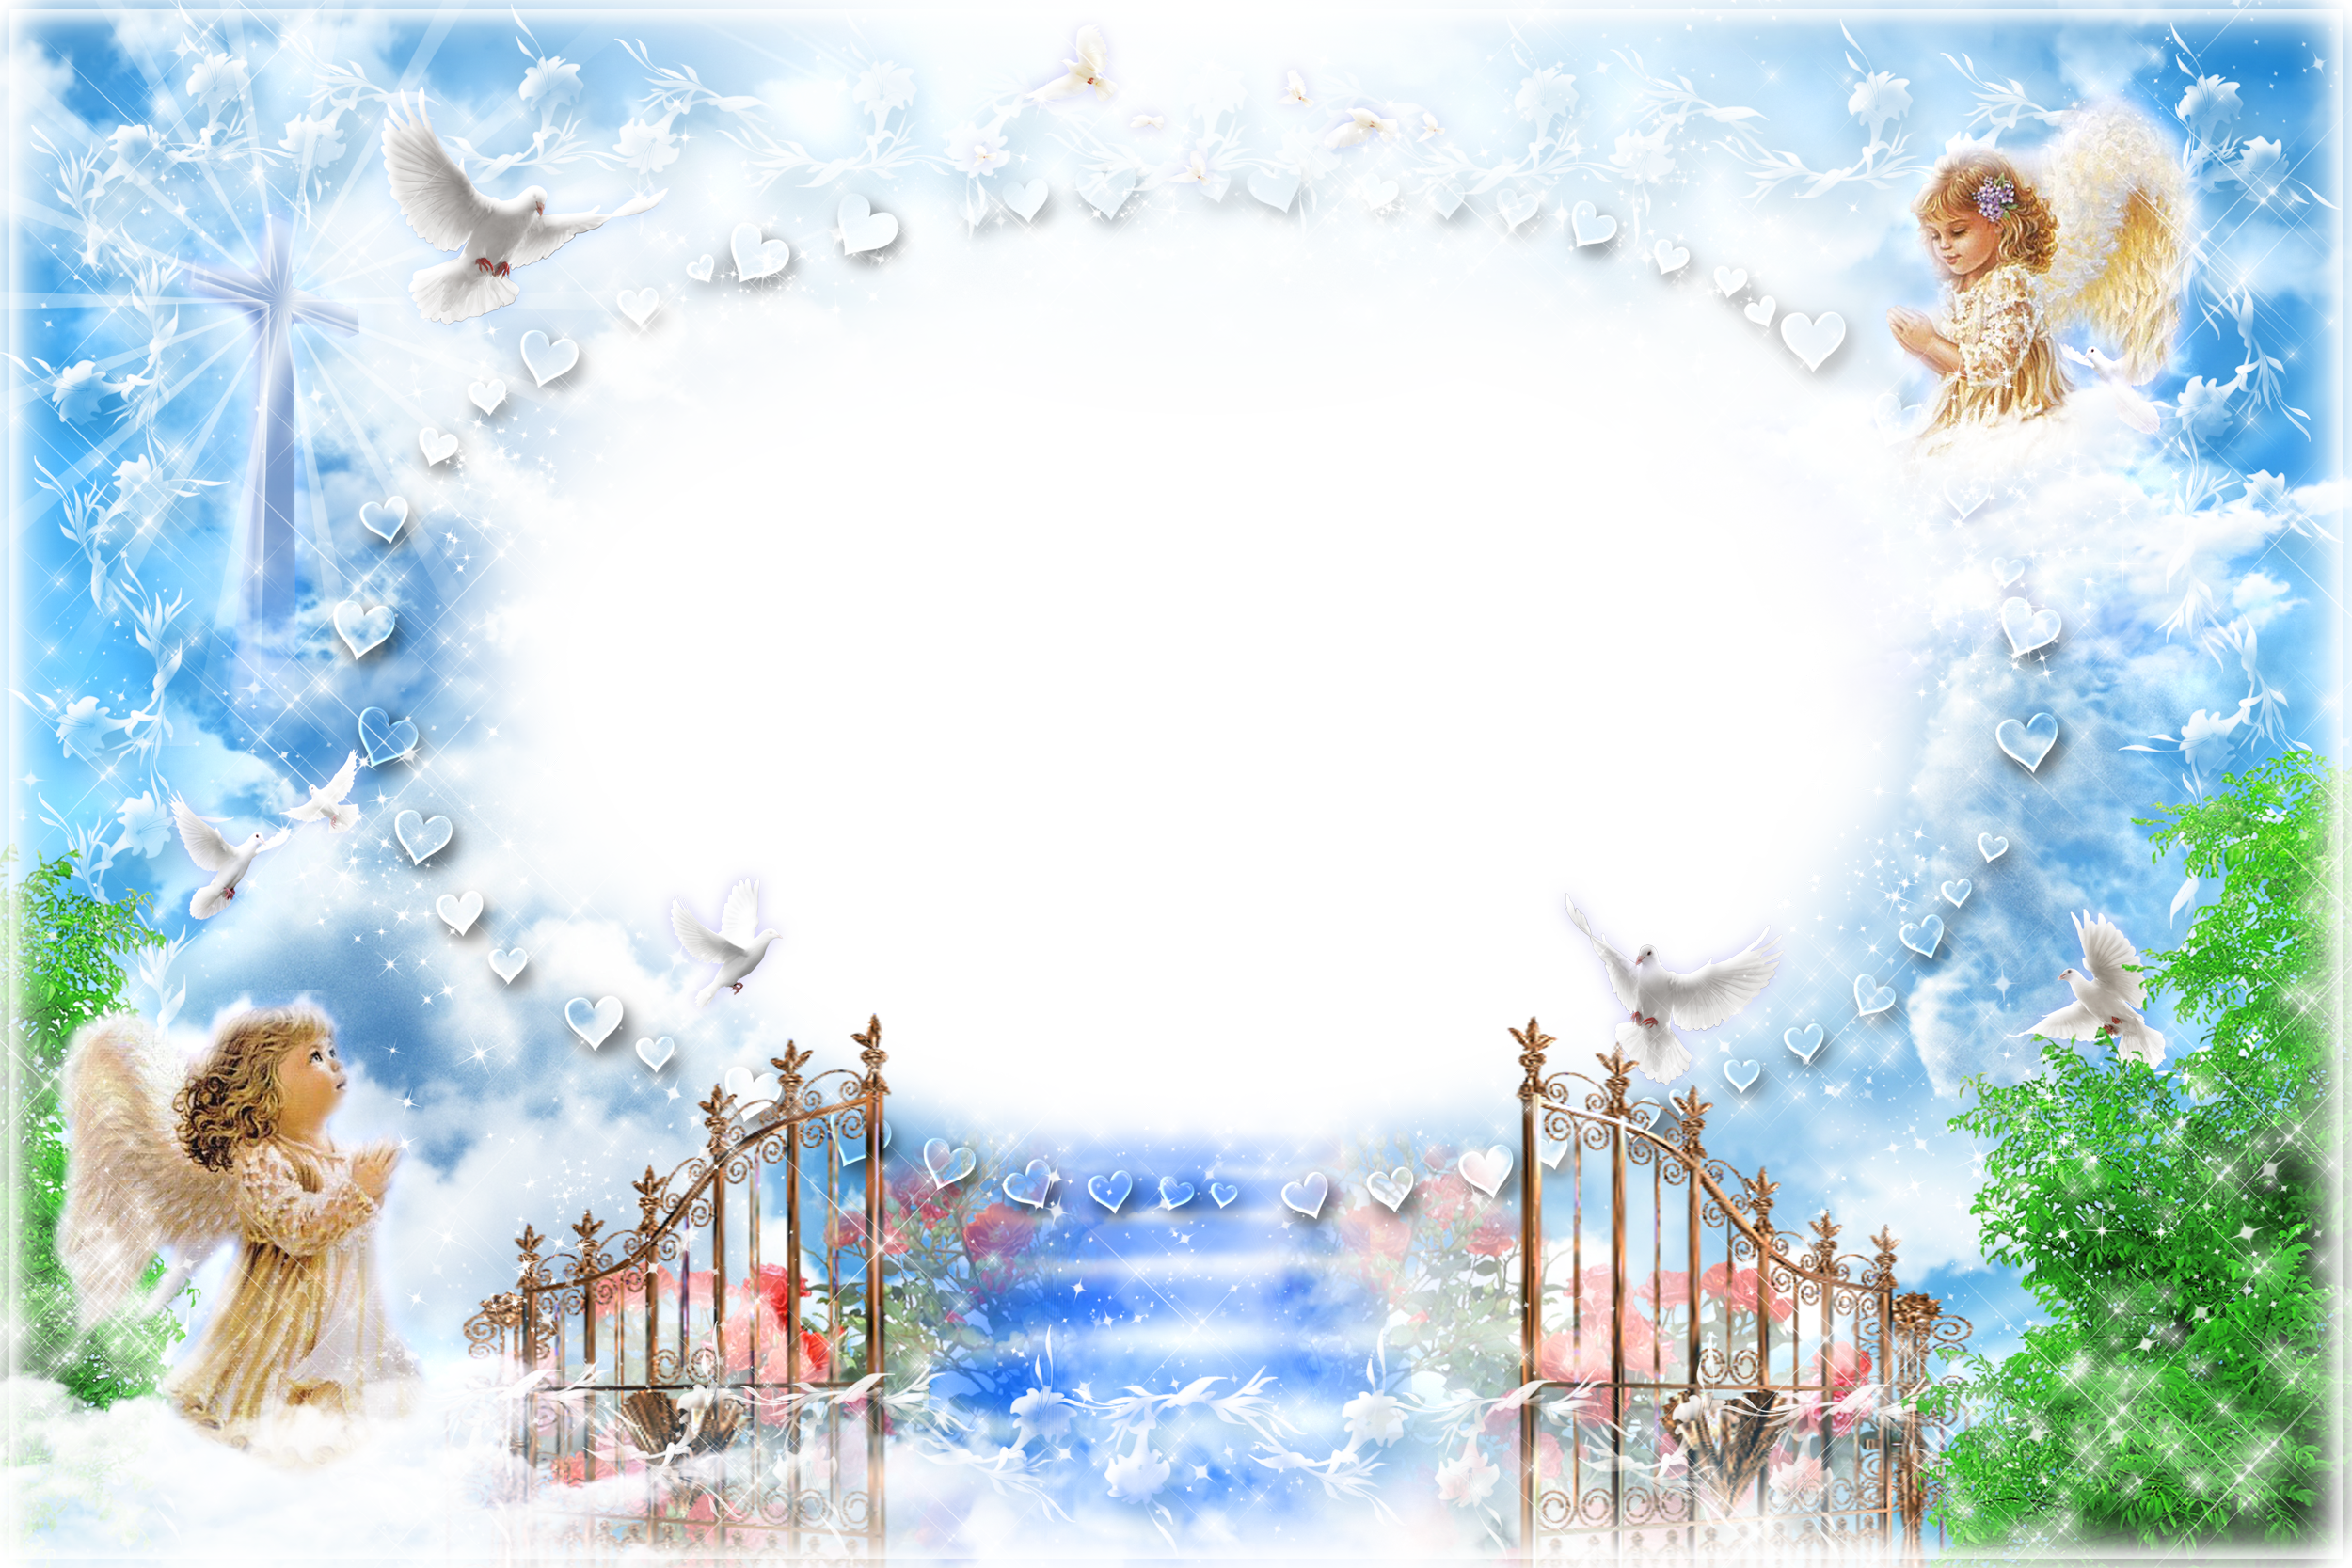 Transparent png frame angels. Heaven clipart pearl gate